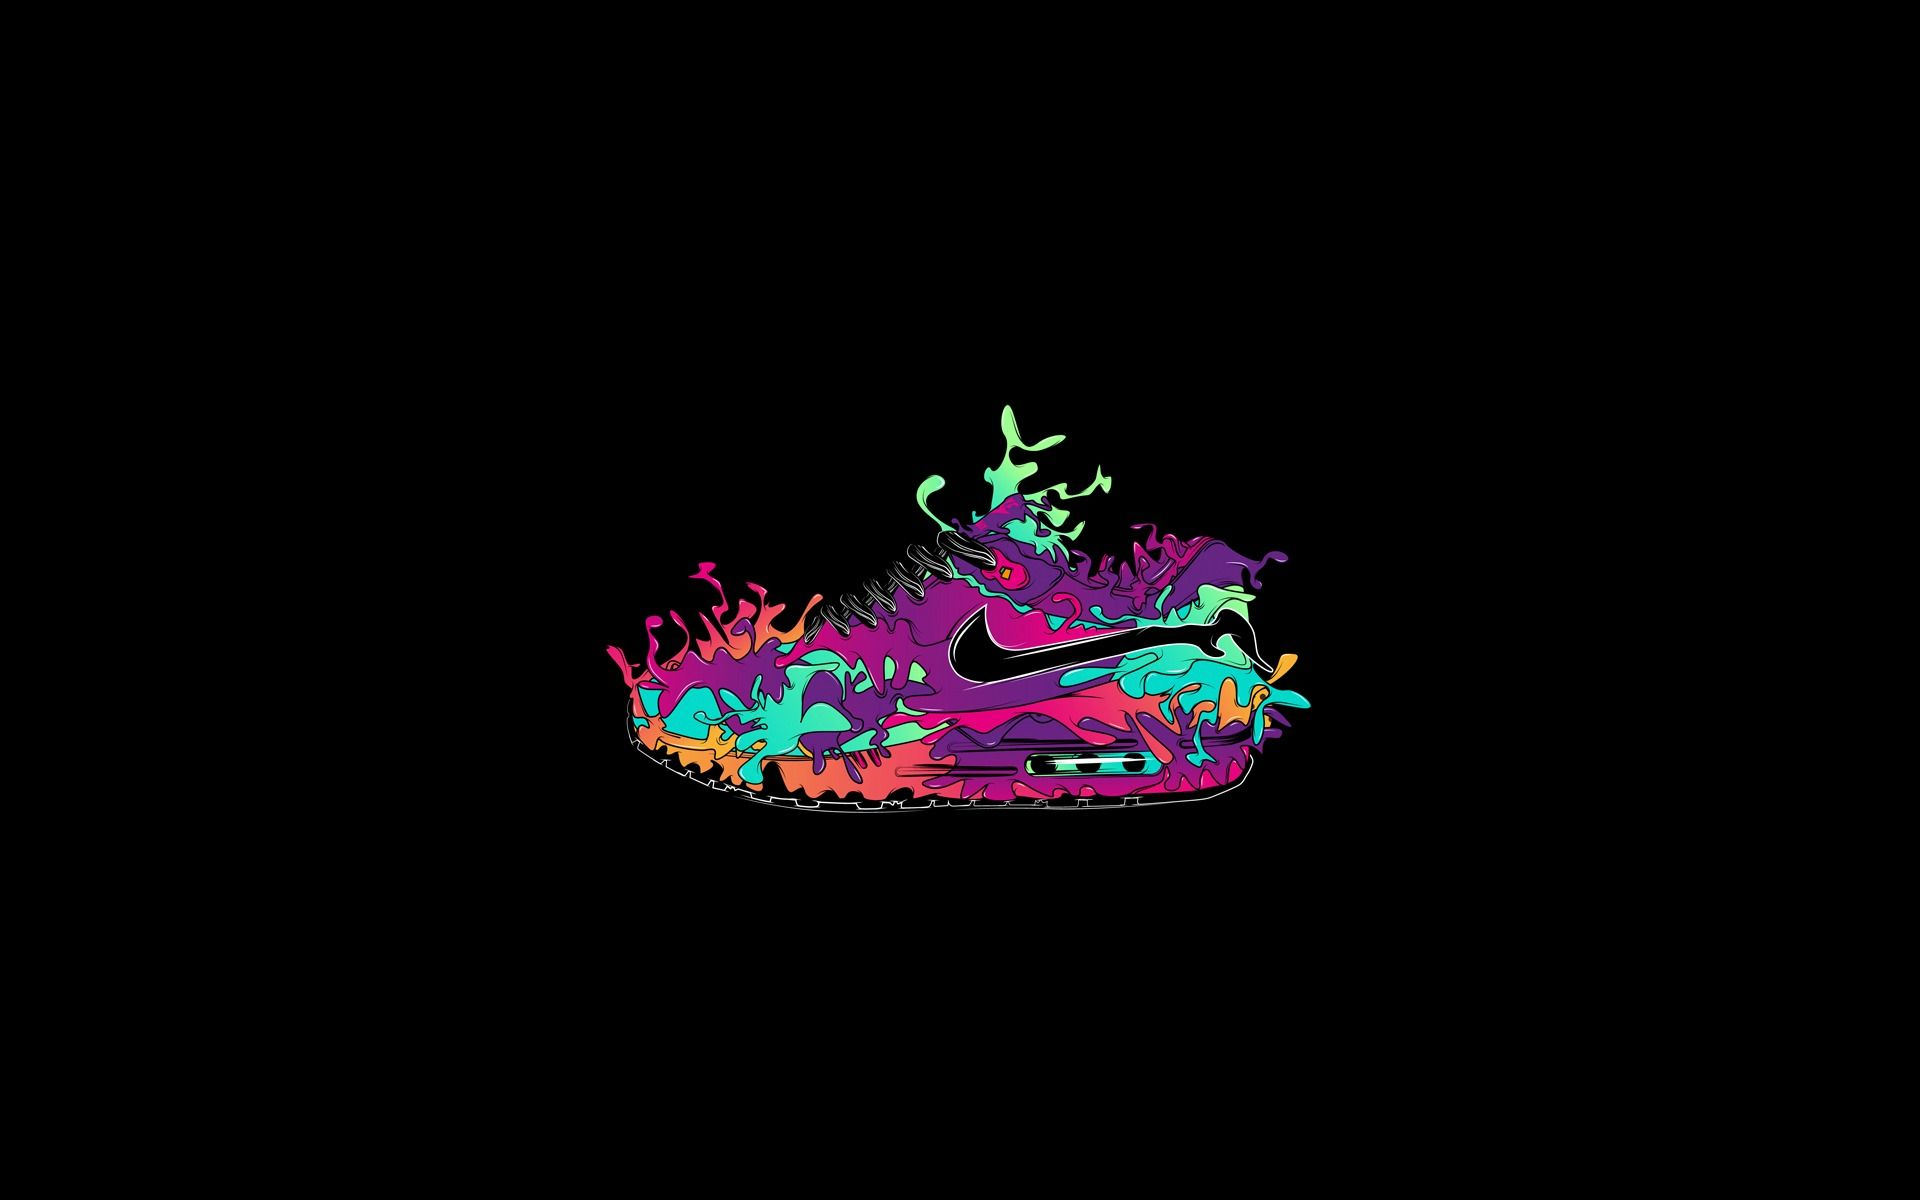 ideas about nike wallpaper on pinterest nike logo 500×750 nike